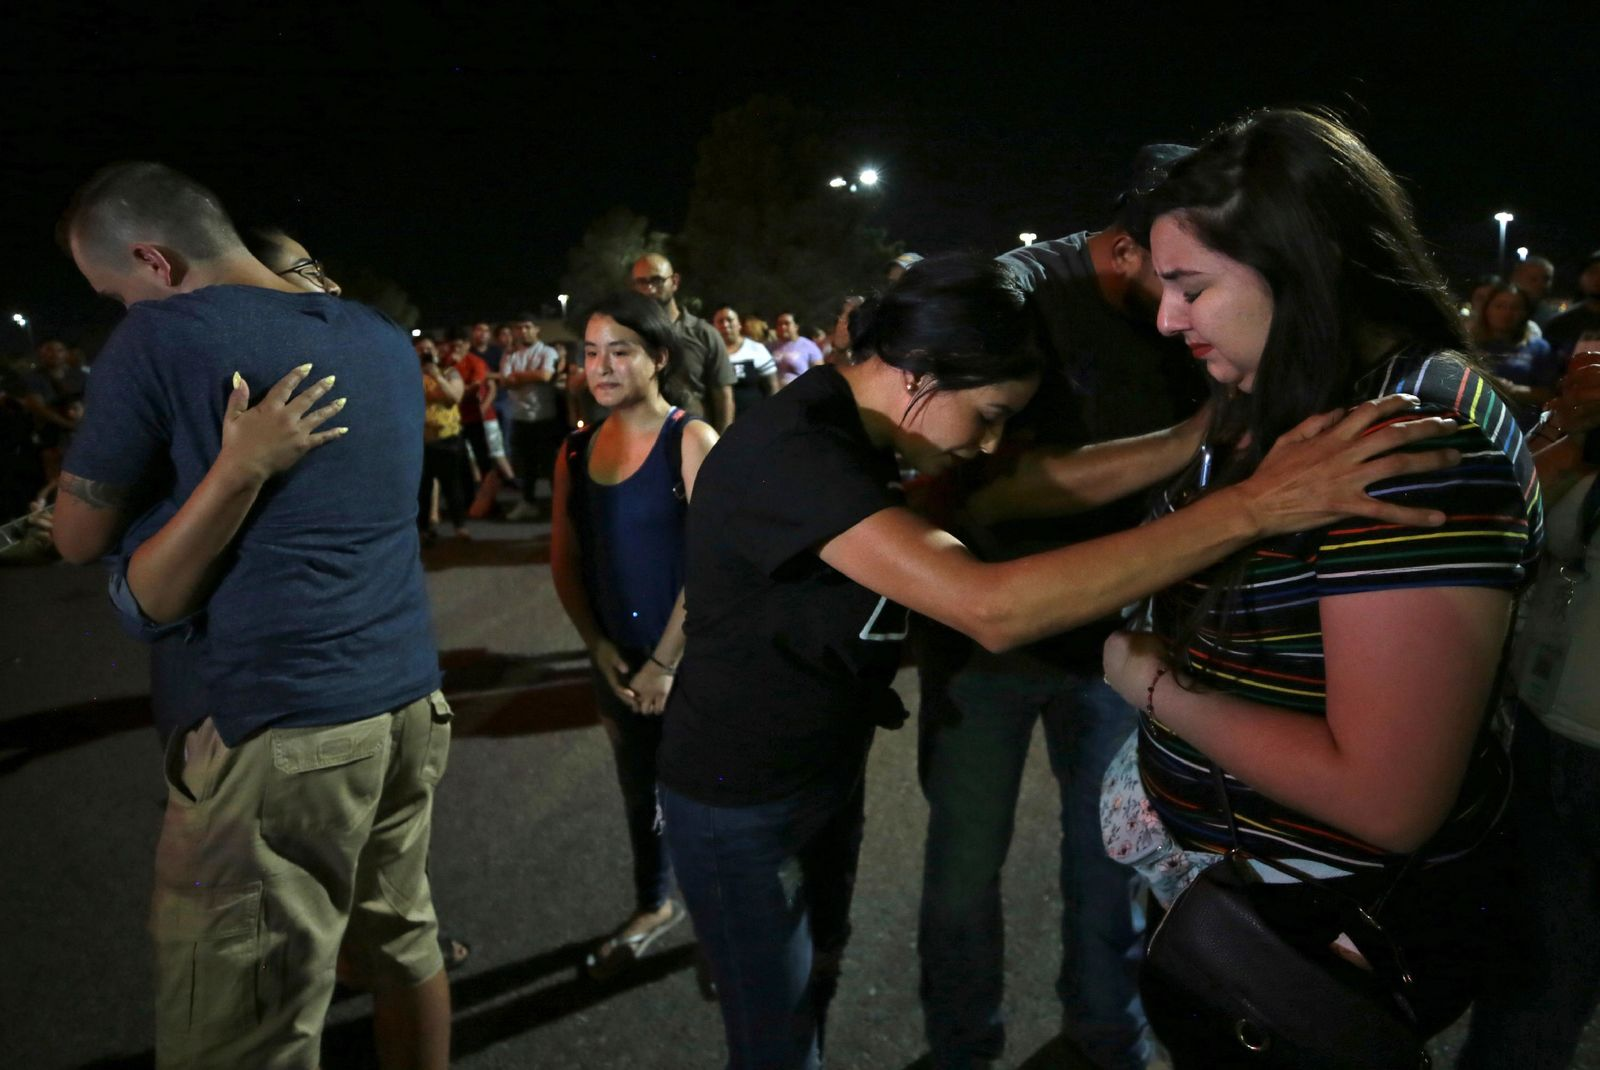 Members of Iglesia Cristiana Manatial en el Desierto pray with El Pasoans who came to hold vigil Monday, Aug. 5, 2019, outside the Walmart in El Paso, Texas, where a mass shooting took place on Saturday. (Mark Lambie/The El Paso Times via AP)